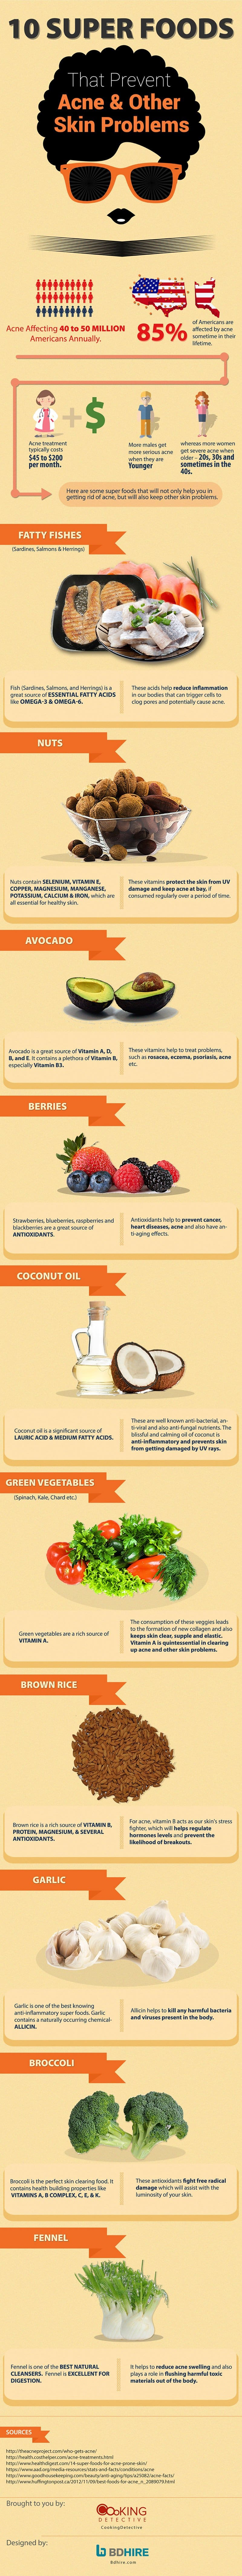 10-Super-Foods-that-Prevent-Acne-&-Other-Skin-Problems